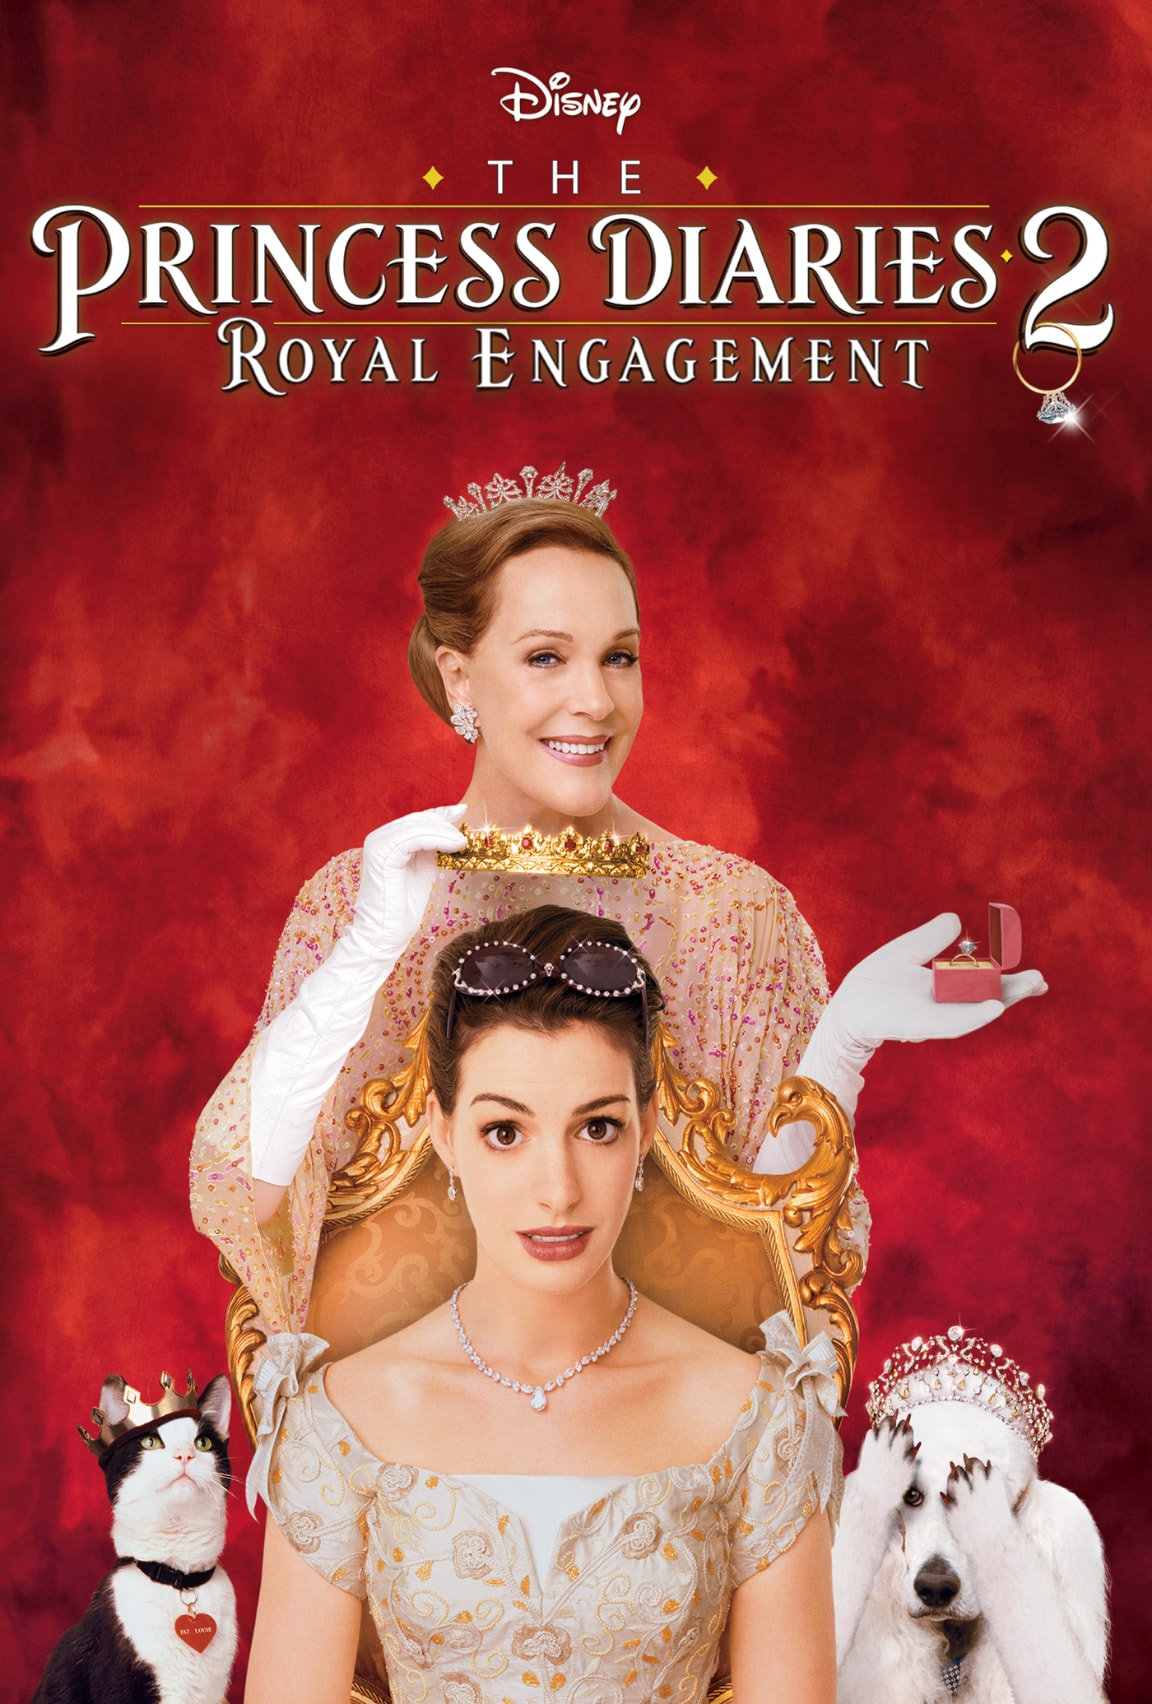 The Princess Diaries 2: A Royal Engagement (2004)